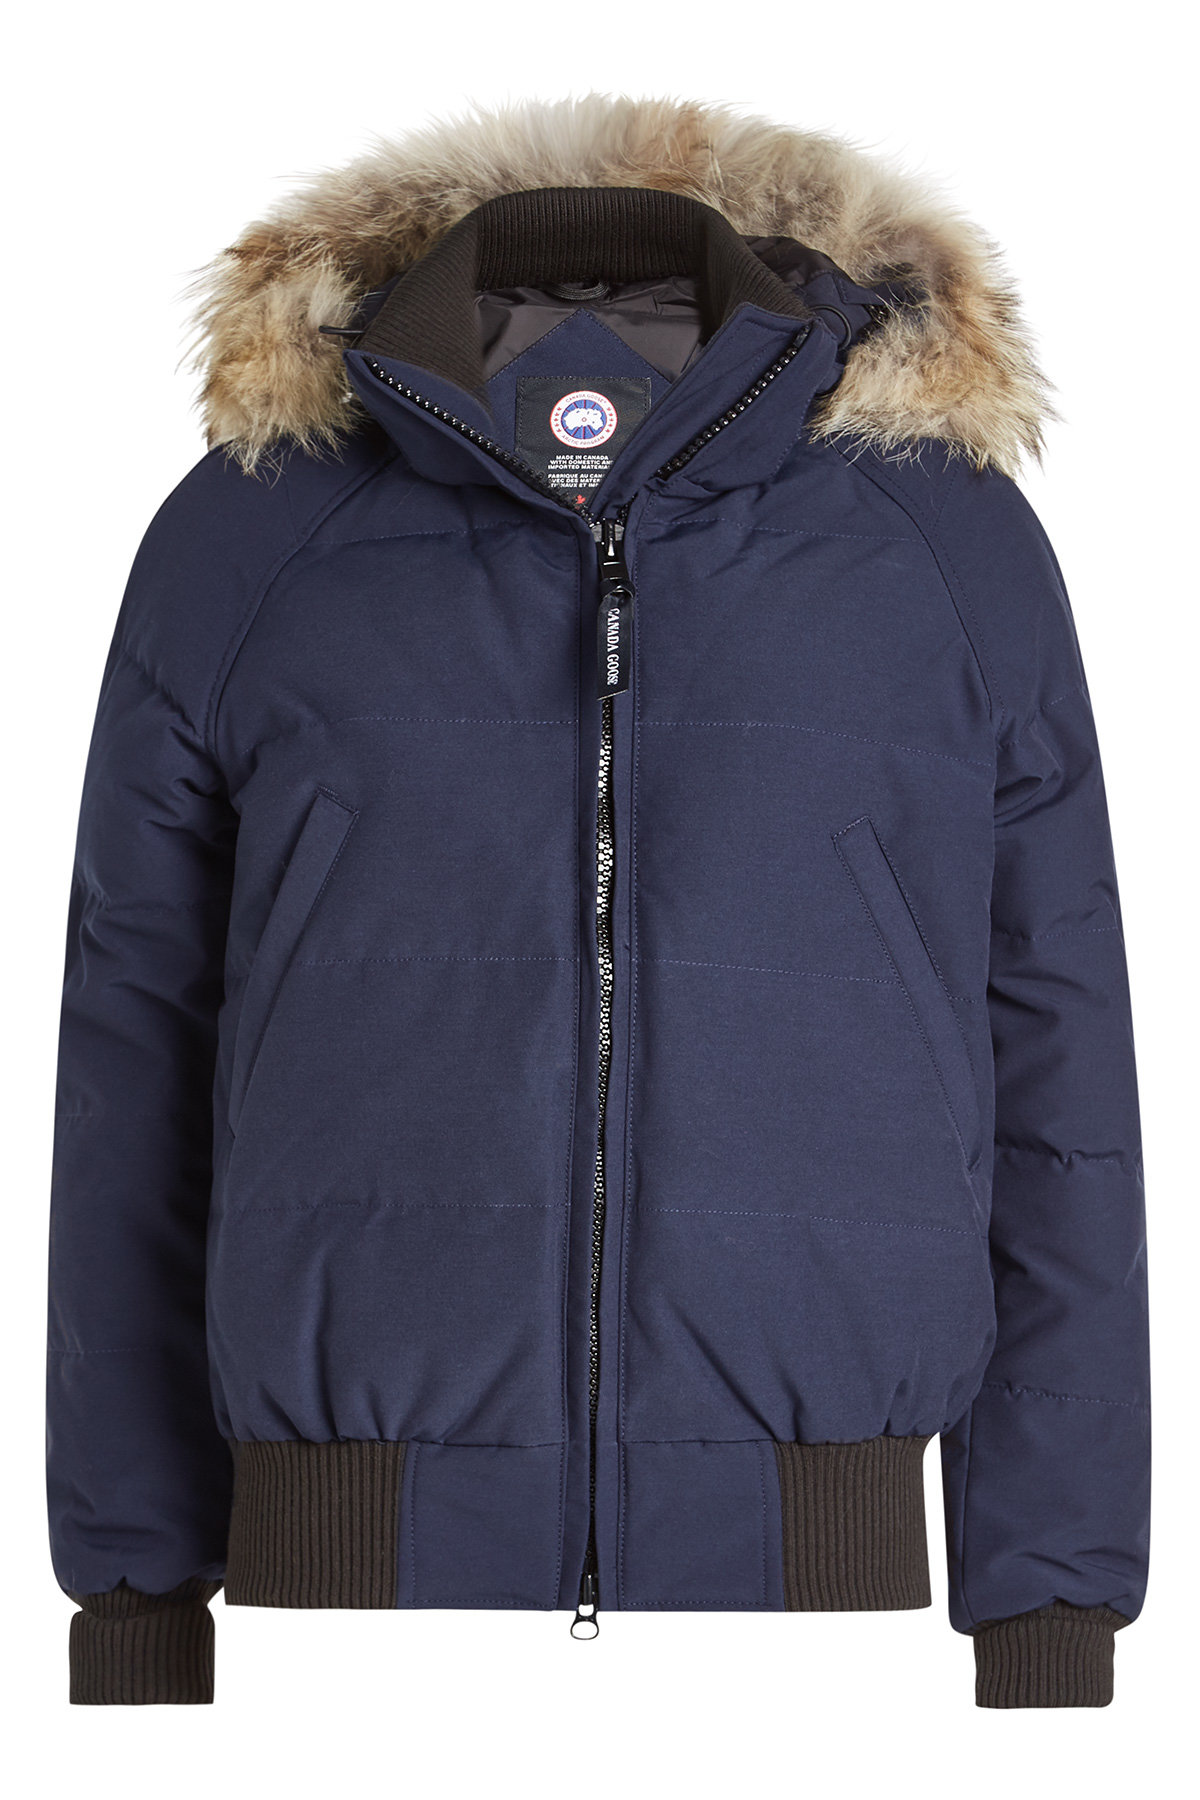 Canada Goose Savona Down-Filled Bomber Jacket with Fur Trimmed Hood - STYLEBOP